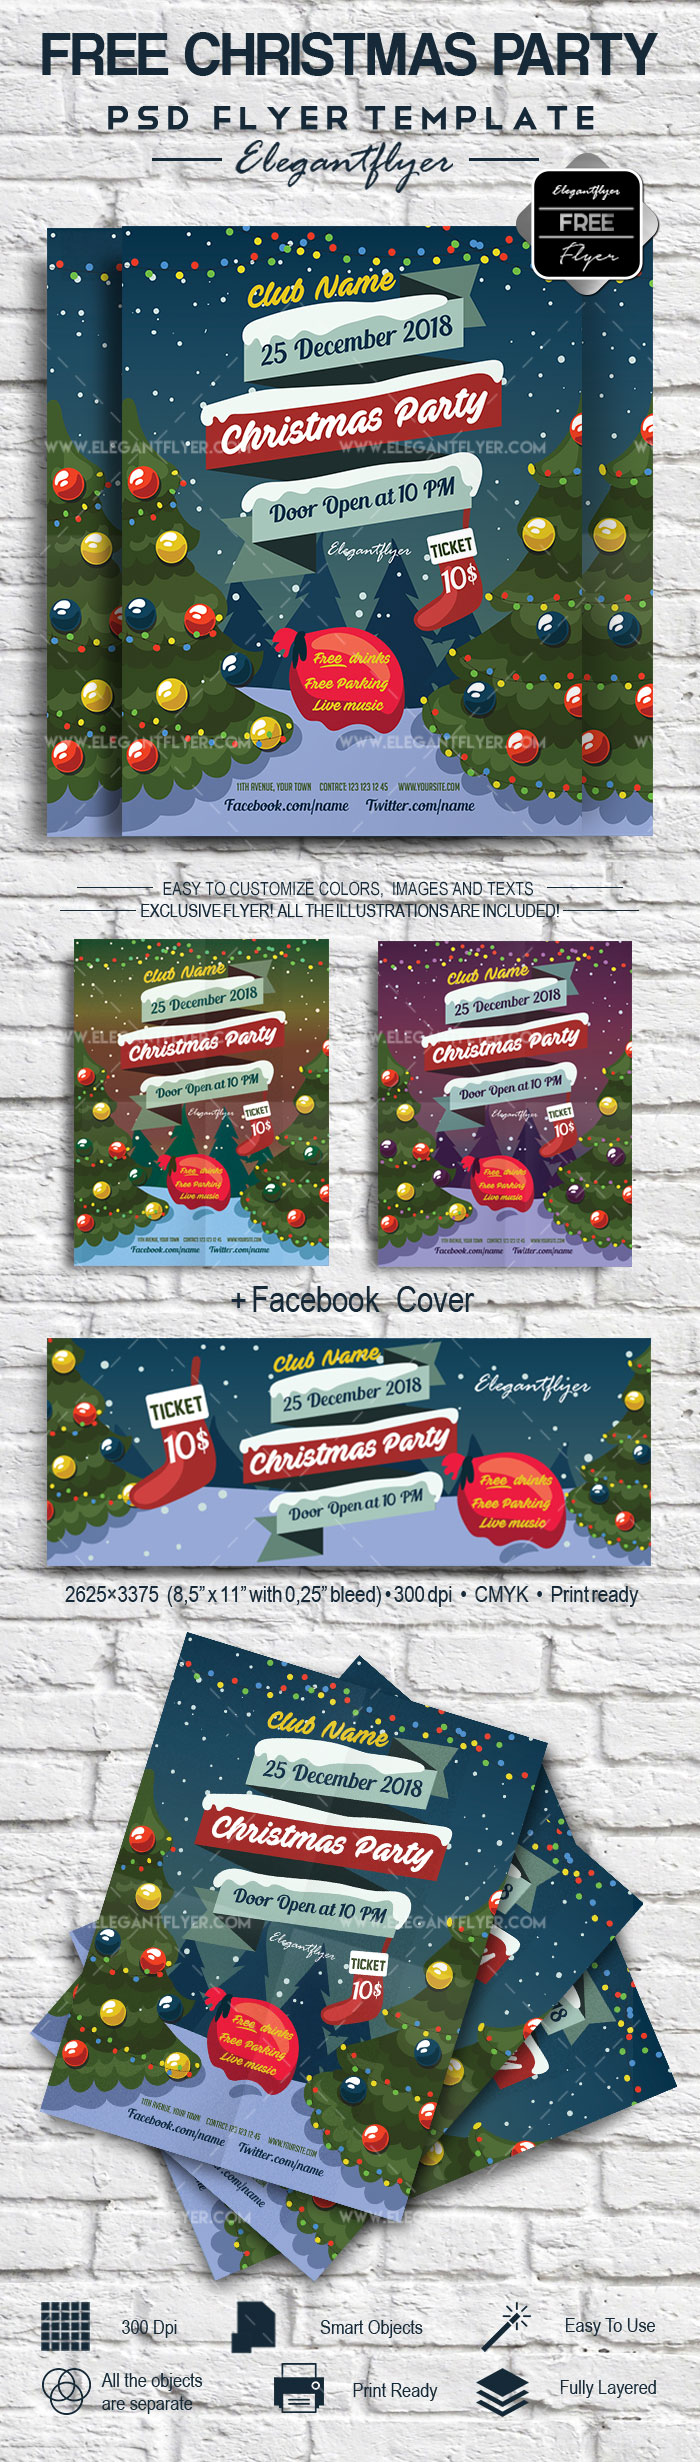 PSD Flyer for Christmas Tree Party